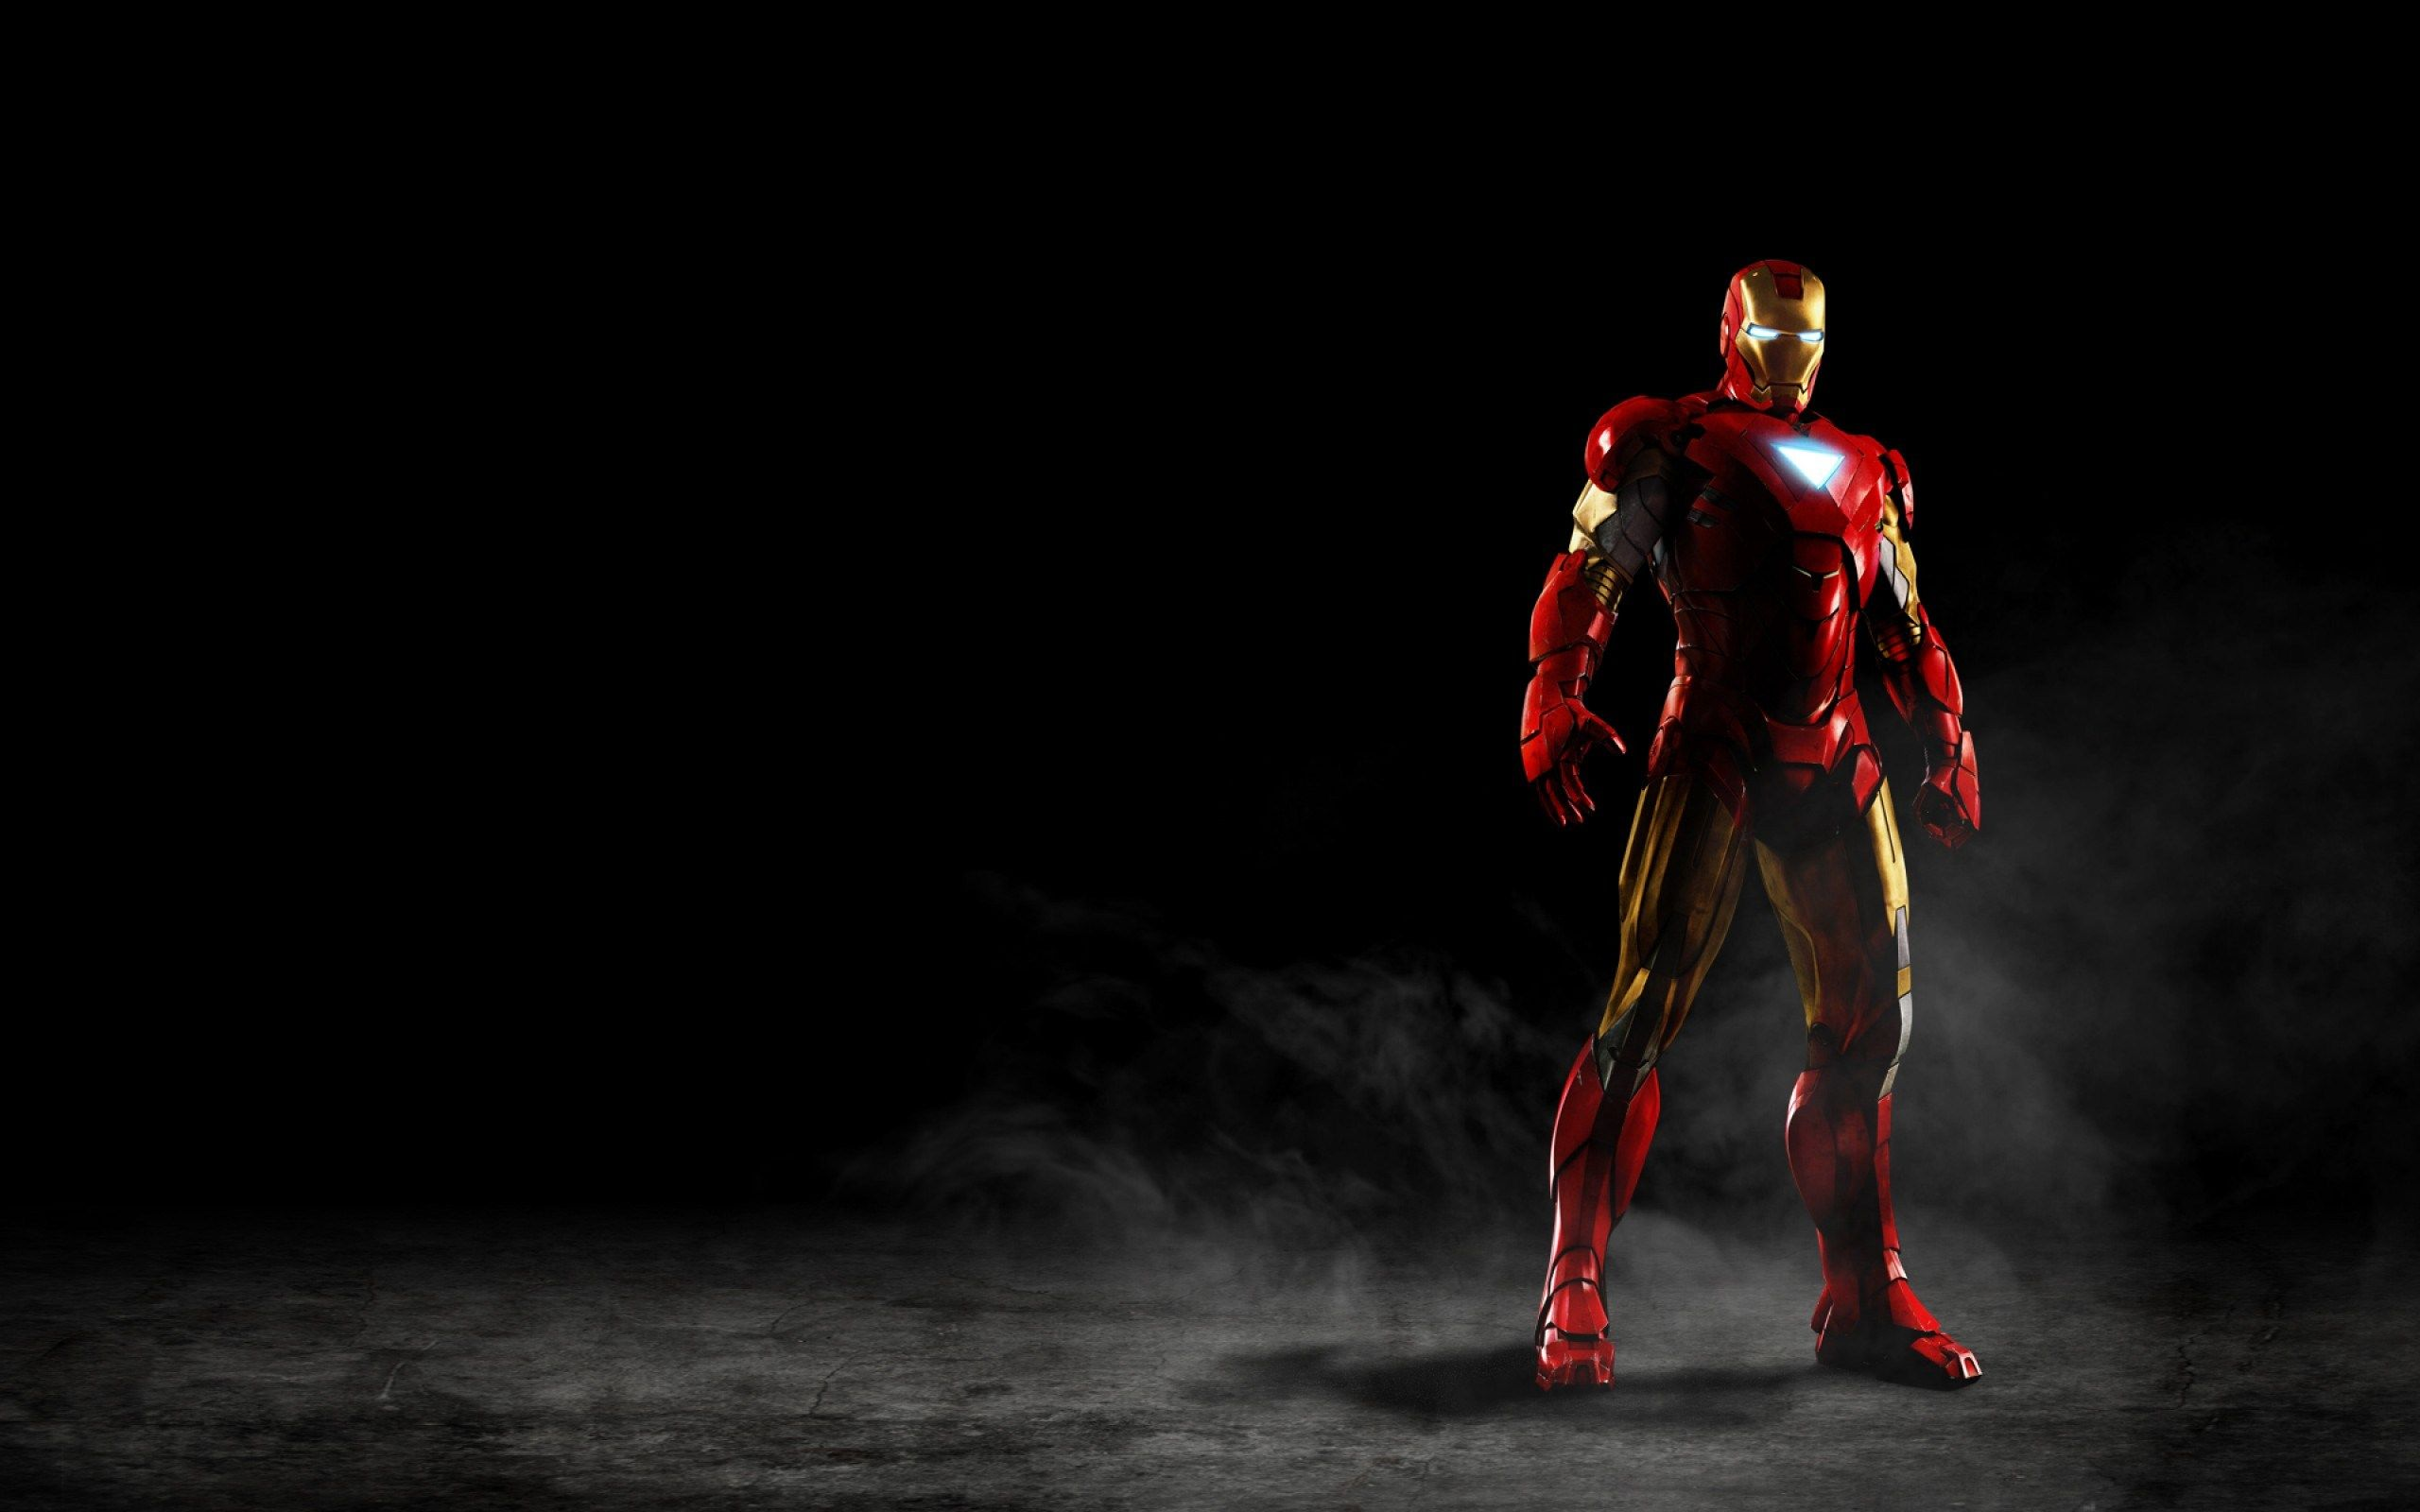 Iron Man Wallpaper (1)